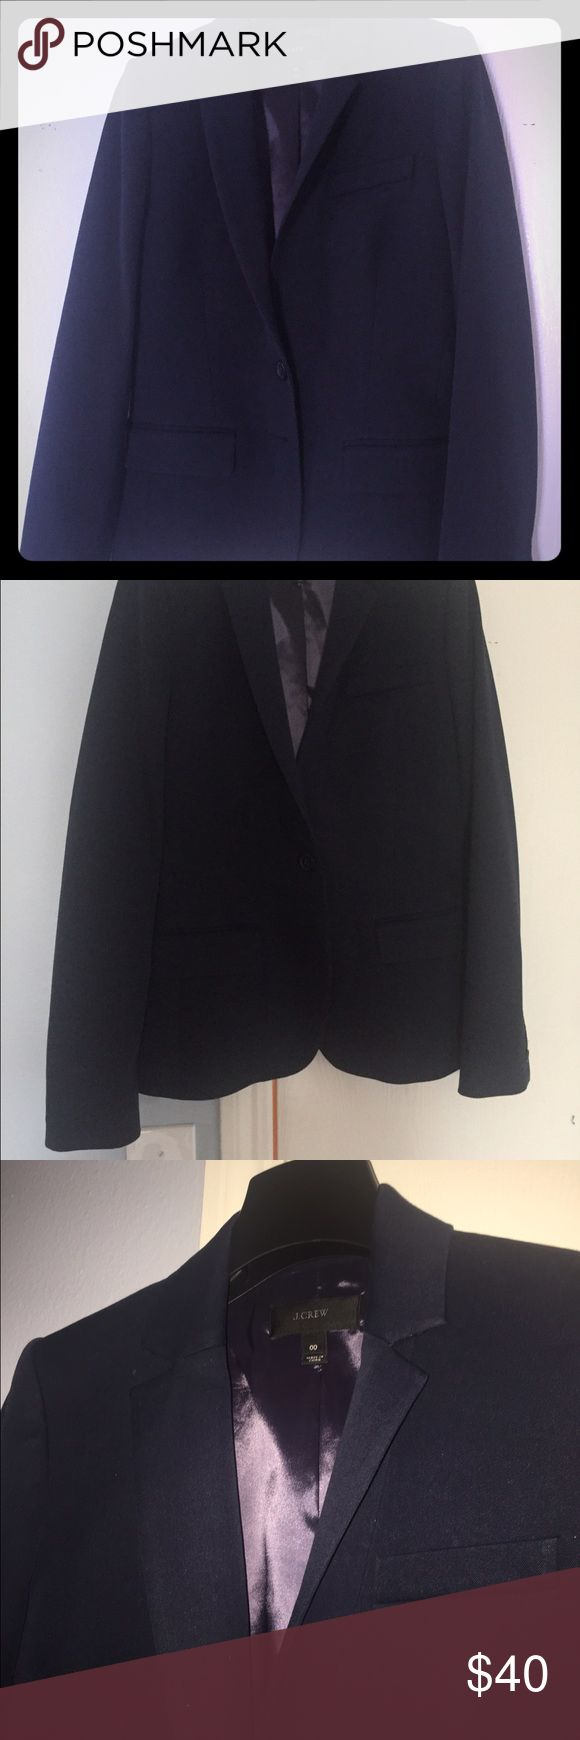 Chic J Crew Navy Suit Jacket / Blazer Classic chic J Crew Suit Jacket in Navy, size 00. In perfect condition, worn once. Will work with any J Crew Navy Suit pants or skirts, or is the perfect blazer for jeans or neutral colored pants. J. Crew Jackets & Coats